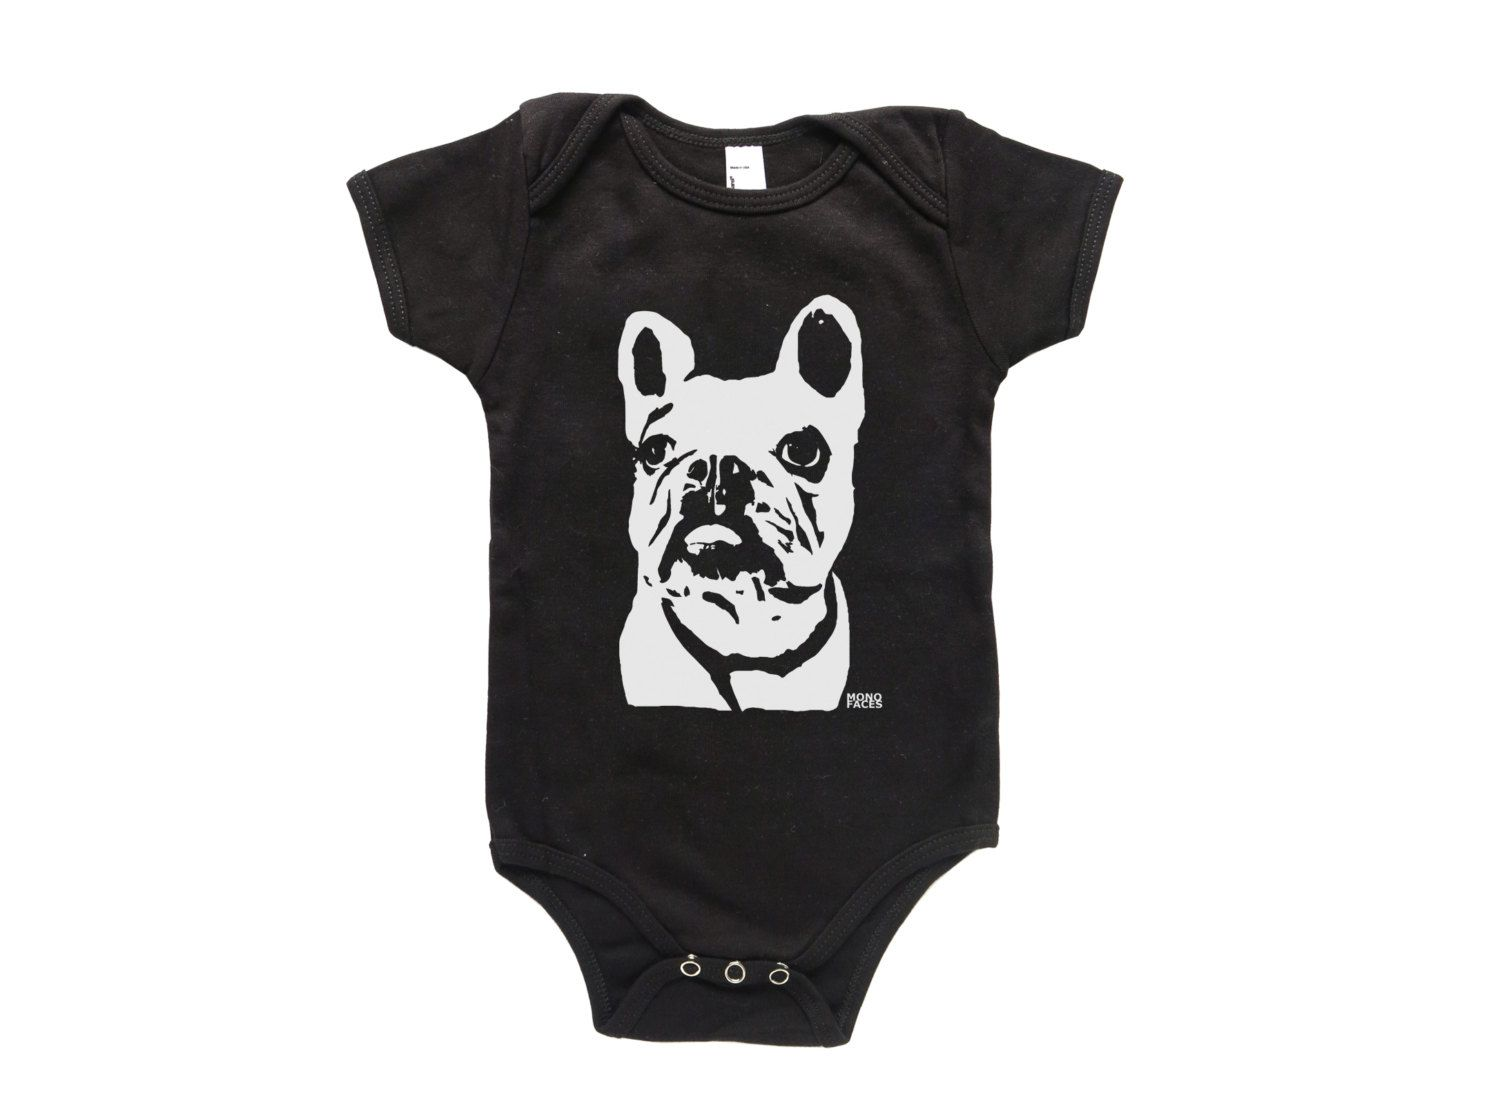 French Bulldog Baby Clothes One Piece Frenchie Shirt